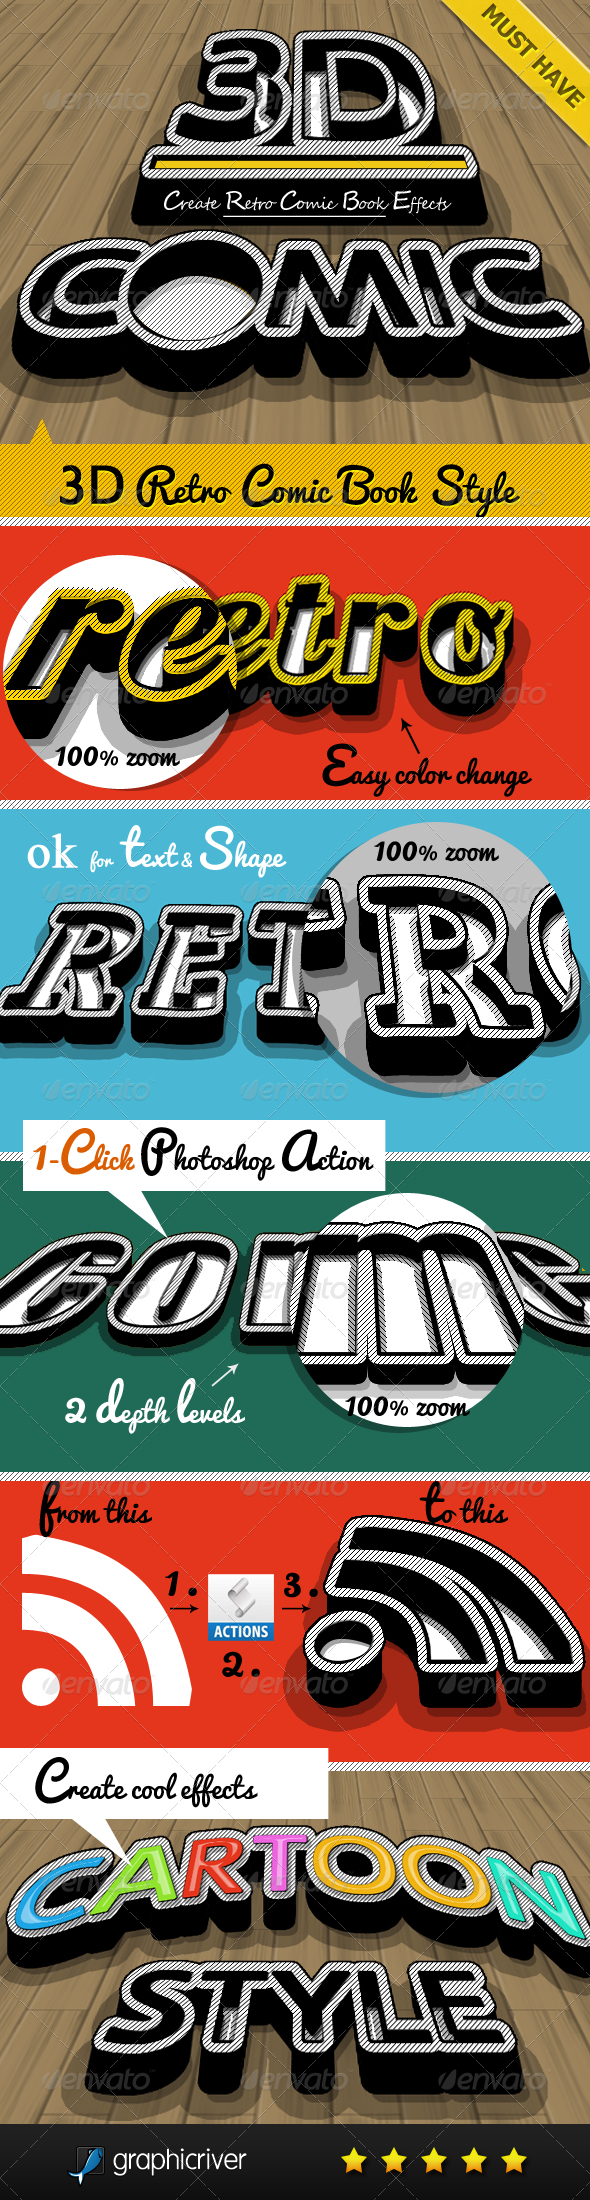 3D Retro Comic Book Photoshop Maker - Text Effects Actions